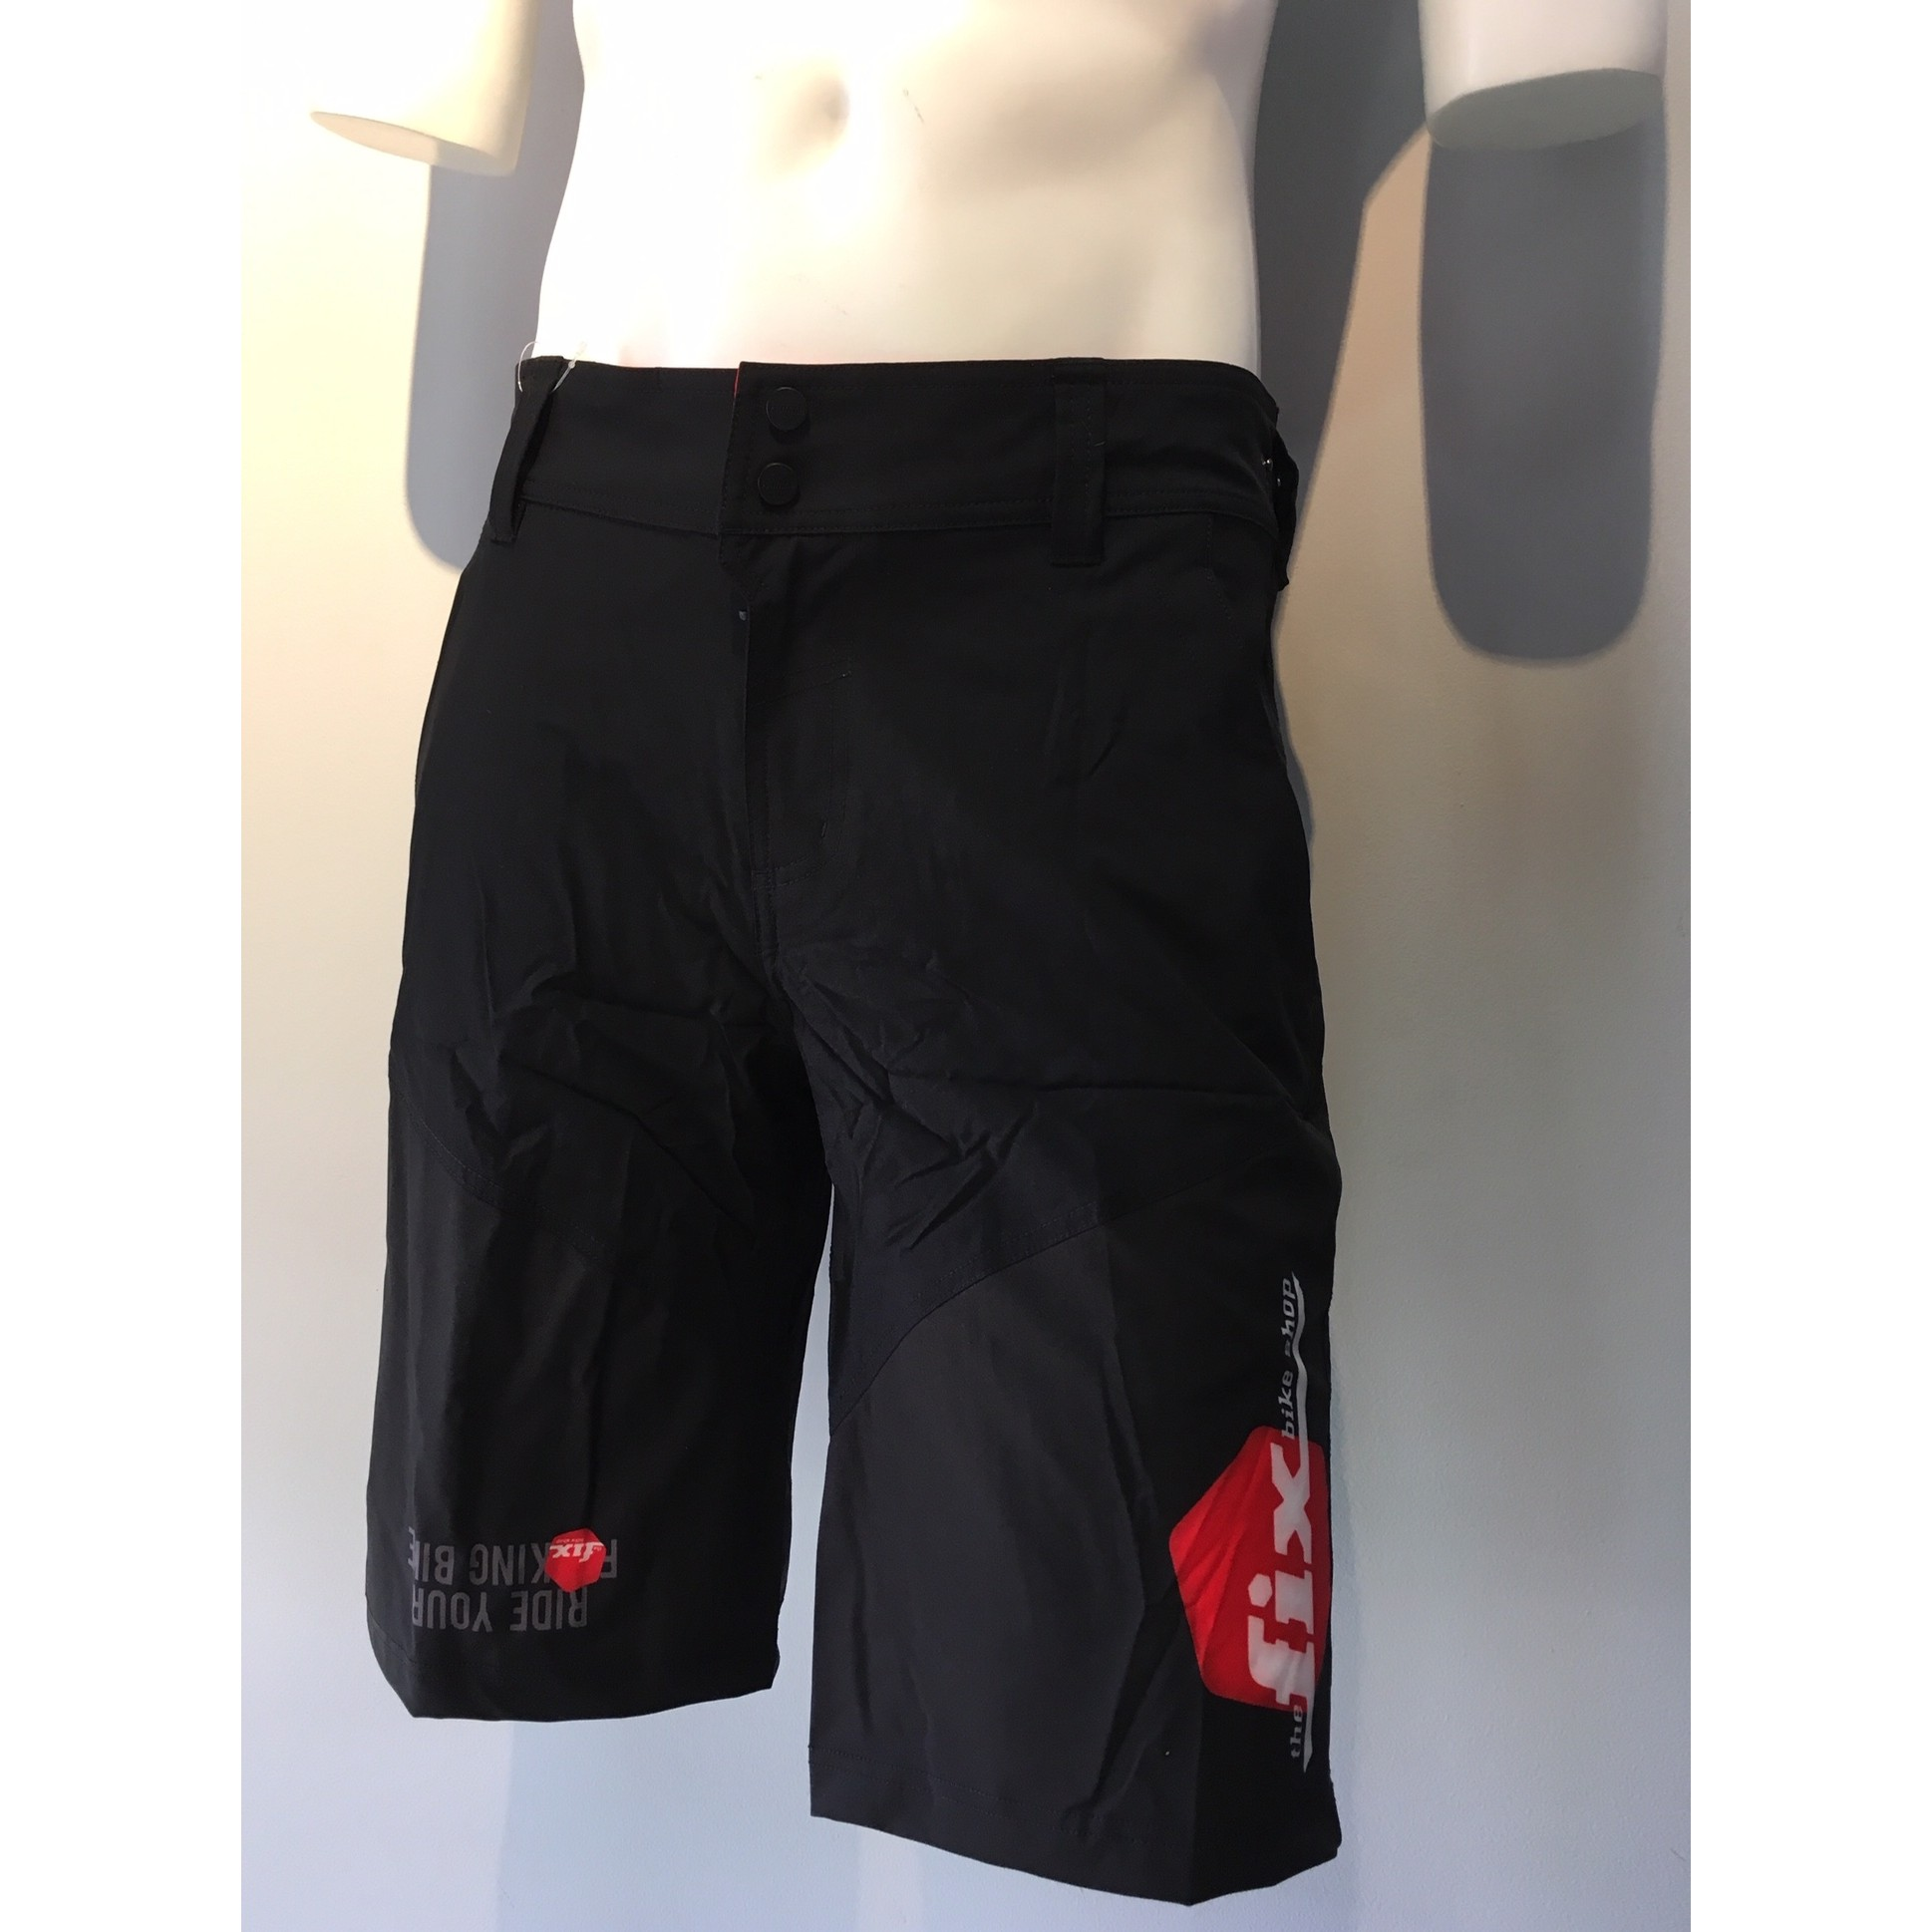 The Fix - Custom Shorts